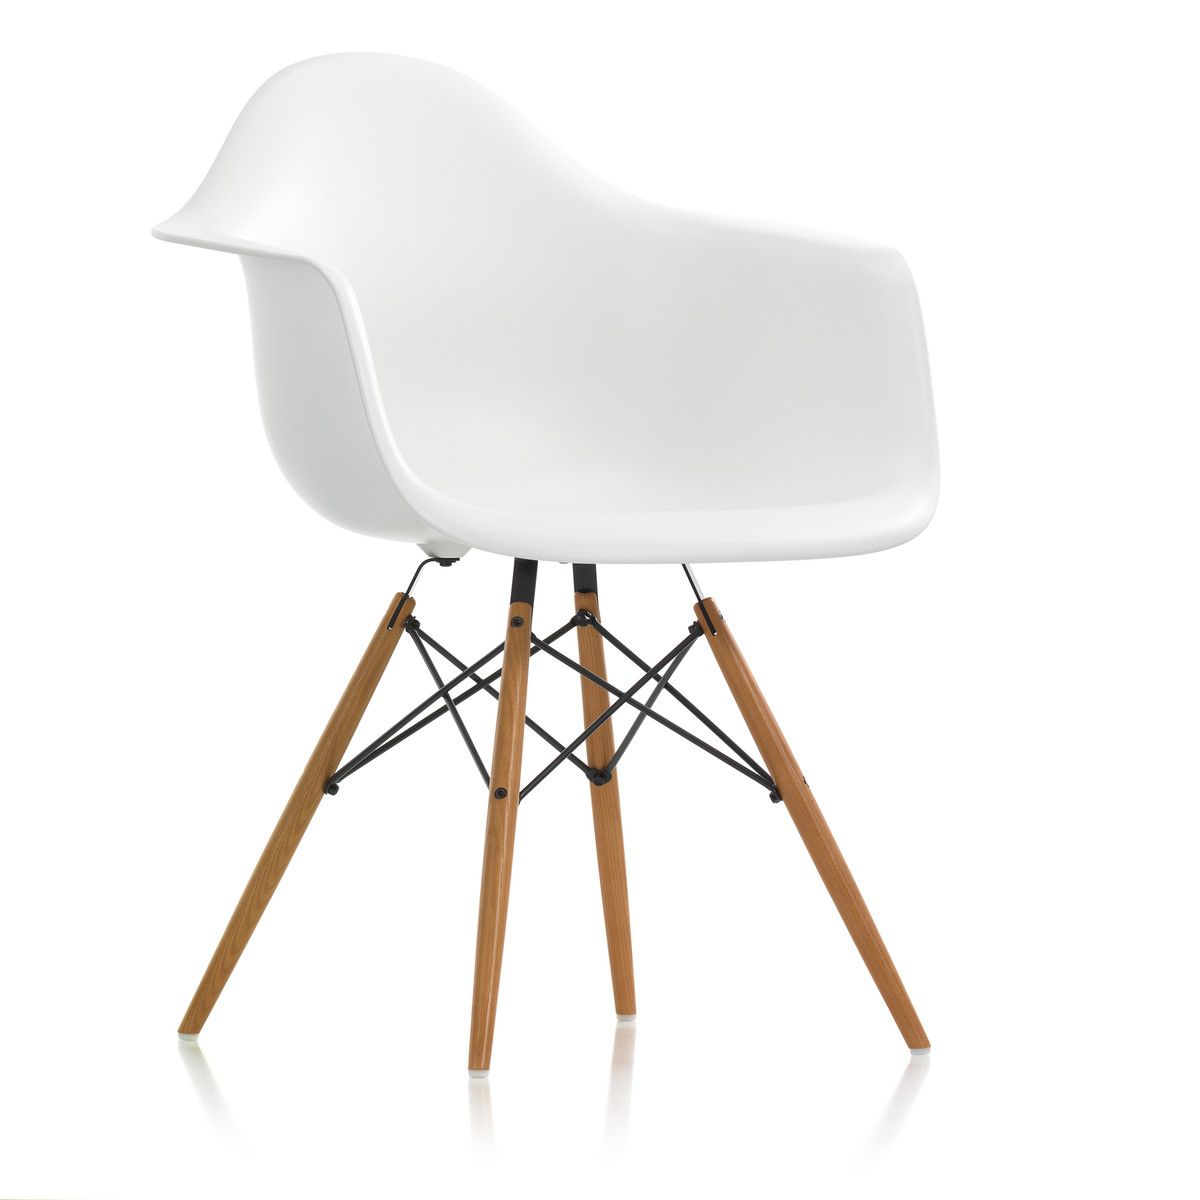 Eames plastic chair vitra - Produkte Eames Dawarmchaireames Chairssortcharles